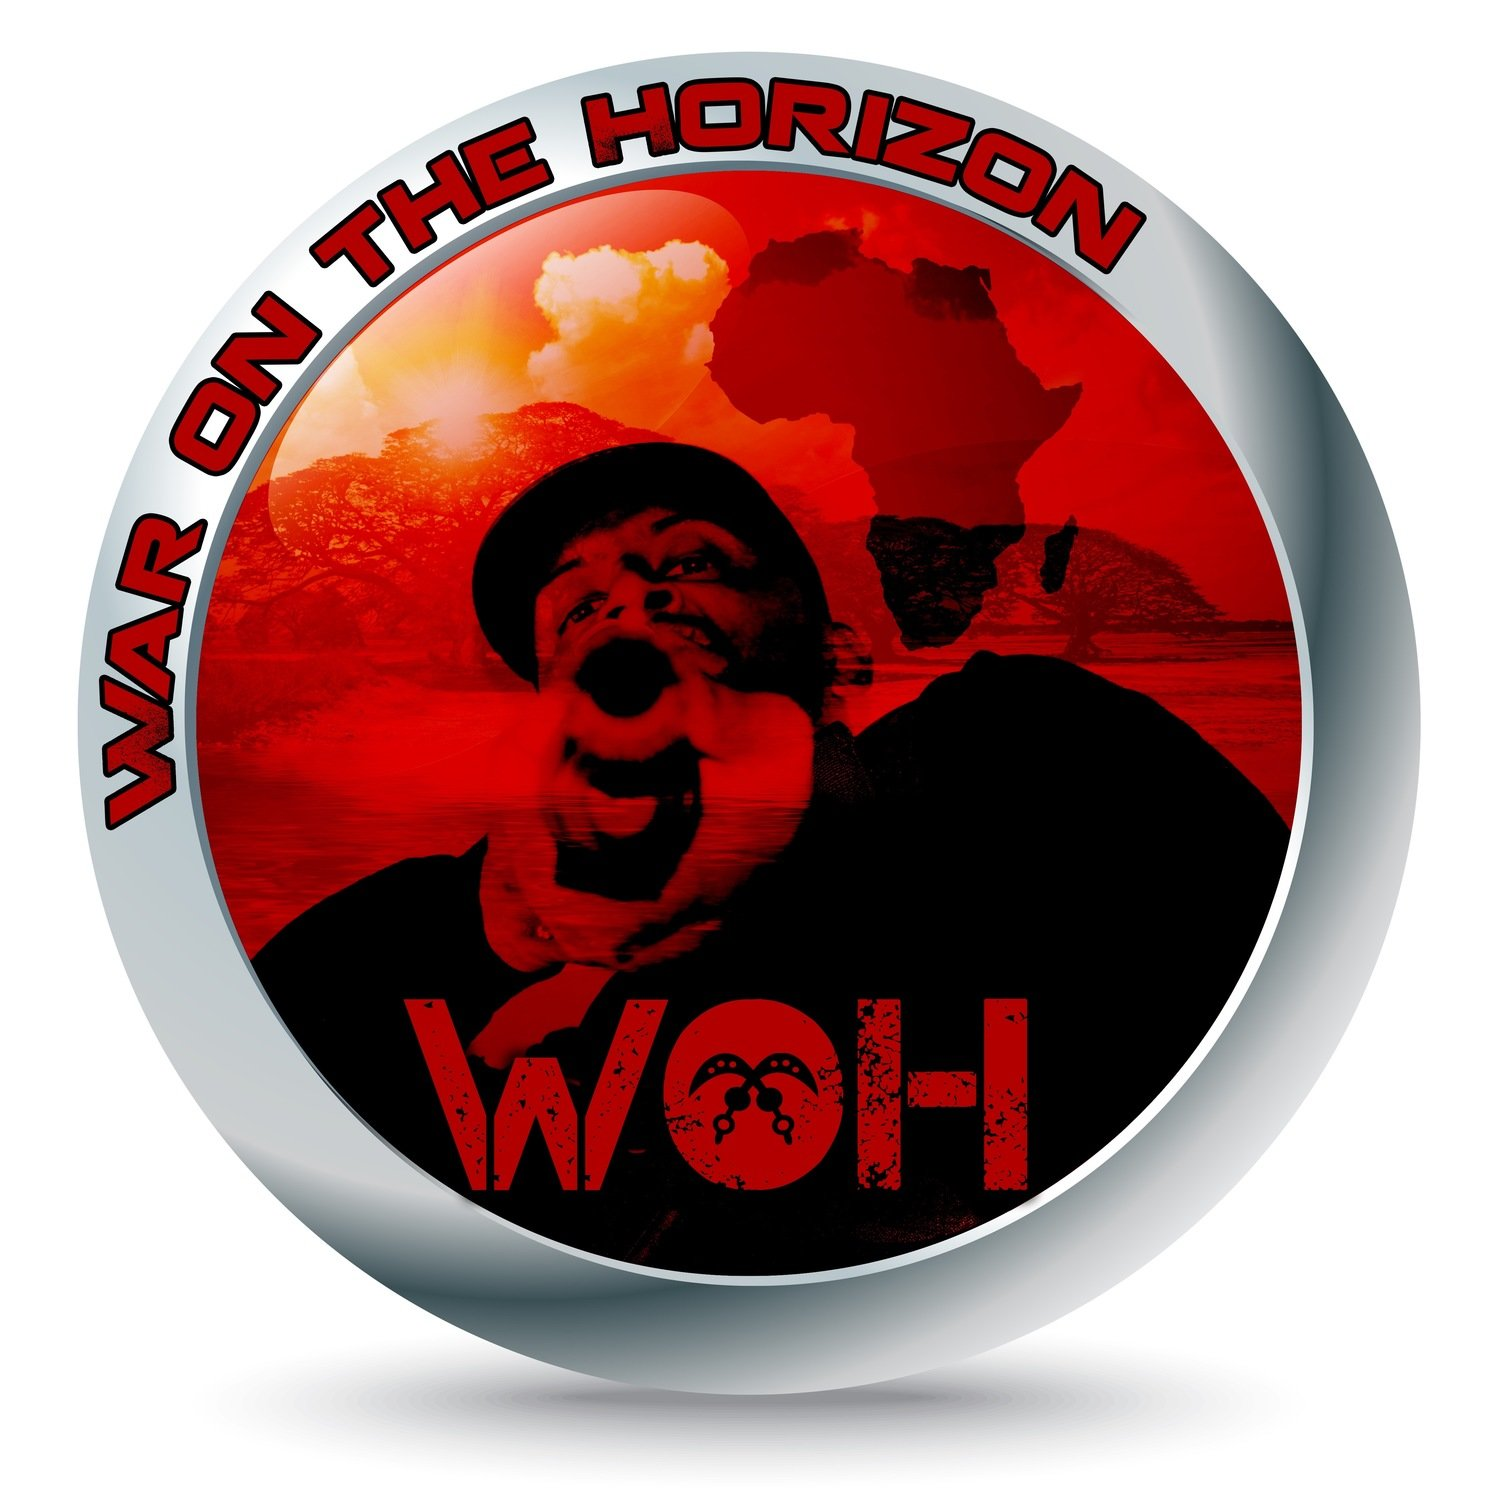 War on the Horizon Collection (50-Disc DVD Set) - .mp4 Electronic Email Version